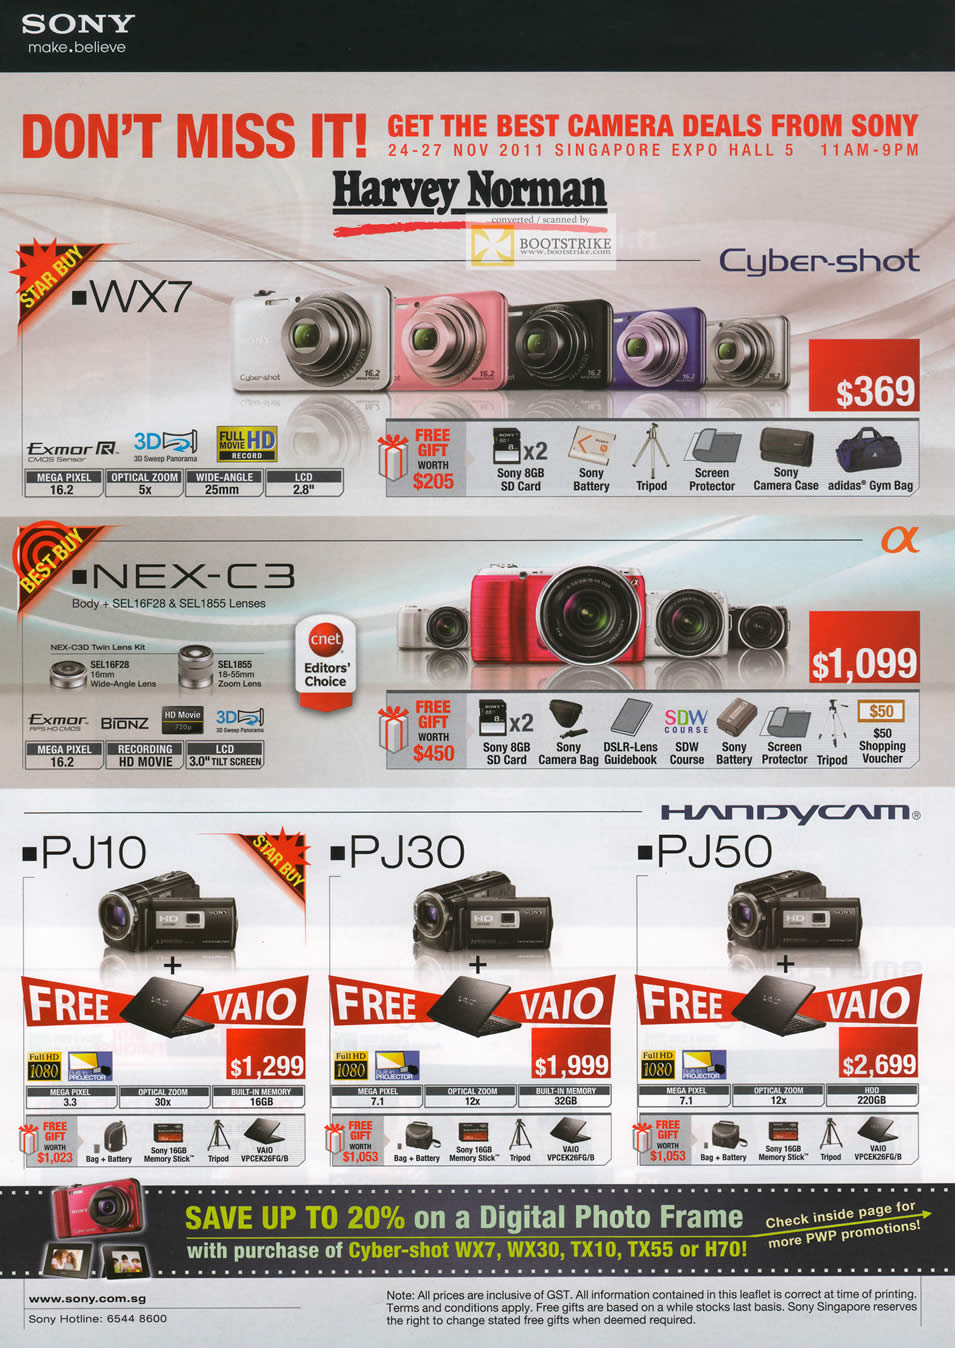 SITEX 2011 price list image brochure of Sony Digital Cameras Cybershot DSC-WX7, NEX-C3, Video Camcorder HDR PJ10, PJ30, PJ50